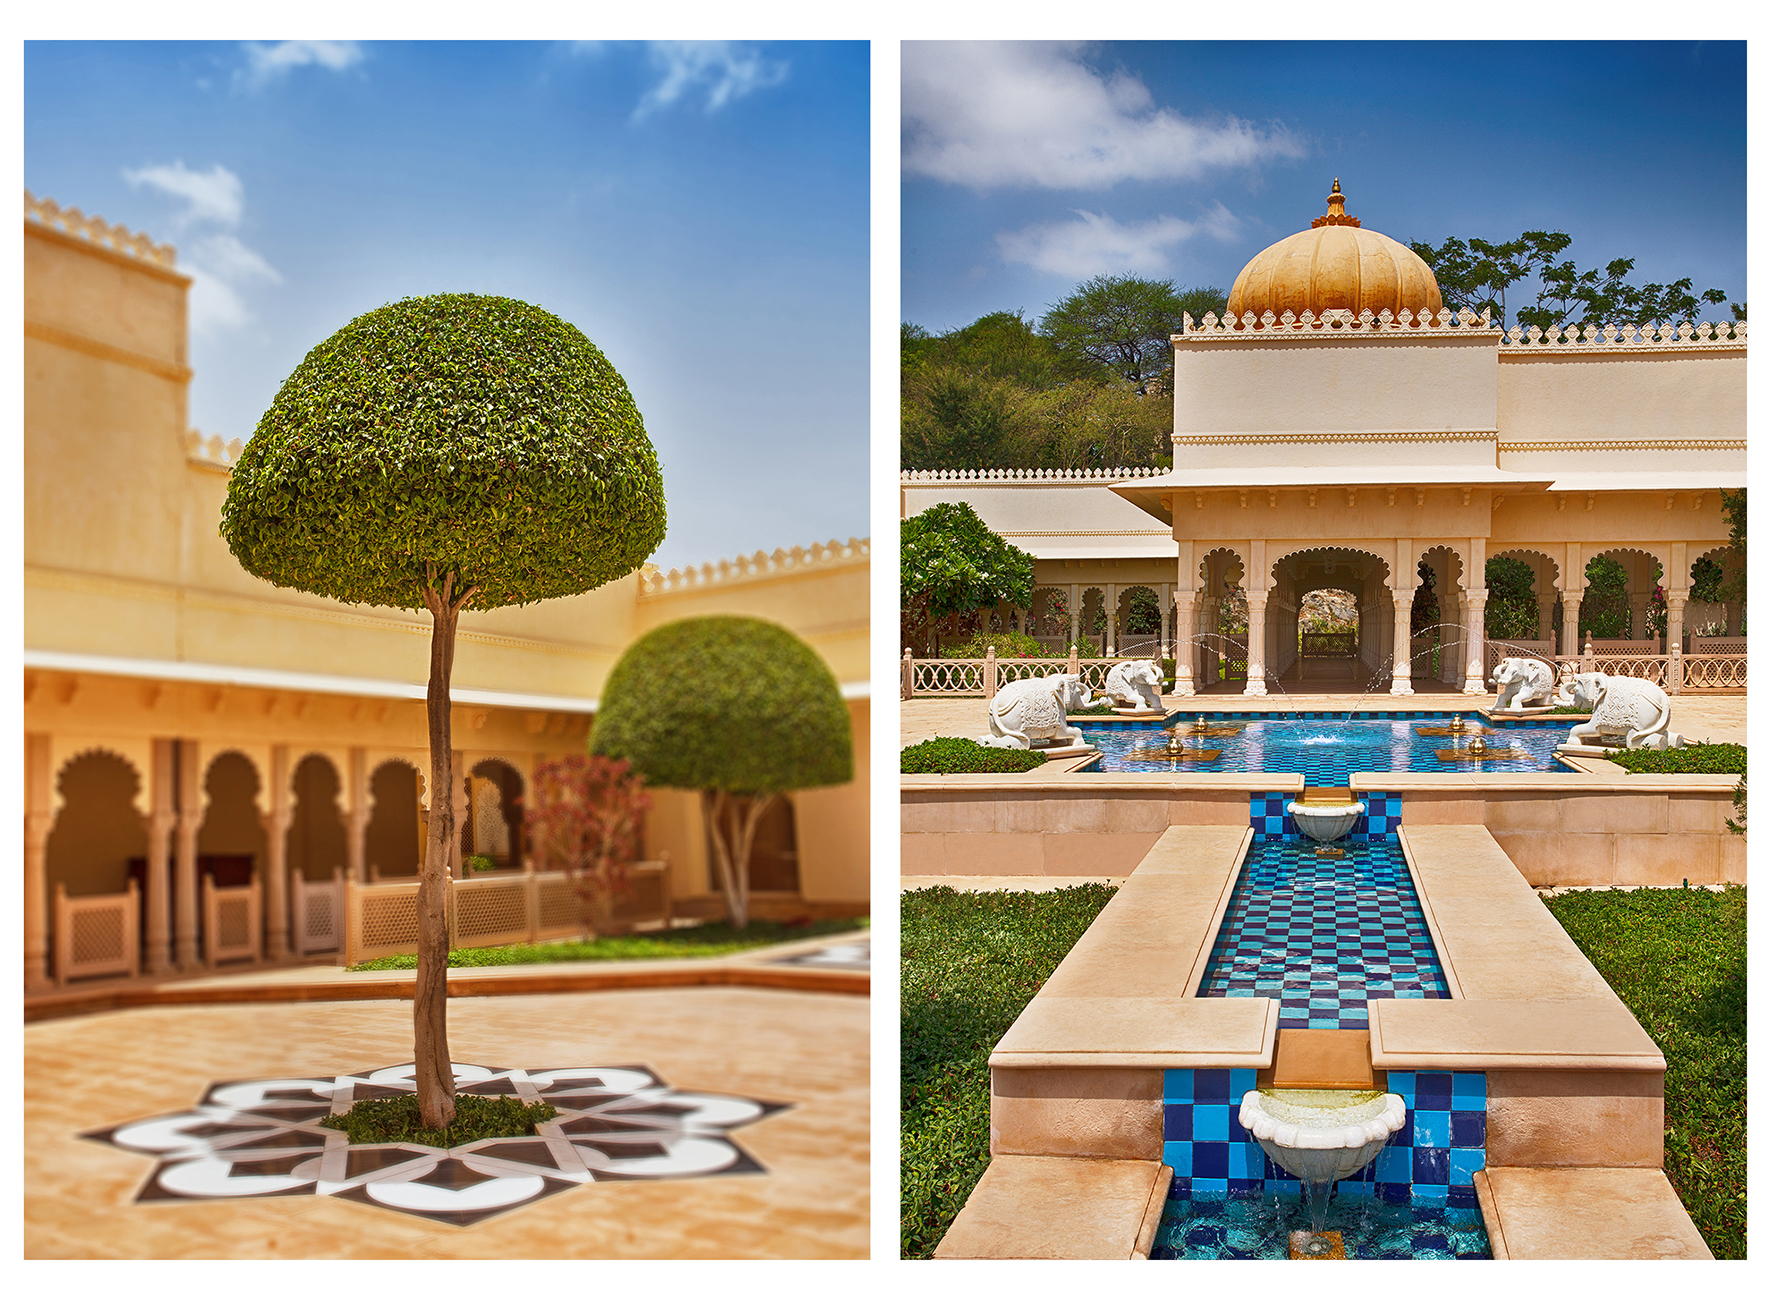 Udaivillas, Udaipur, Oberoi Hotels & Resorts